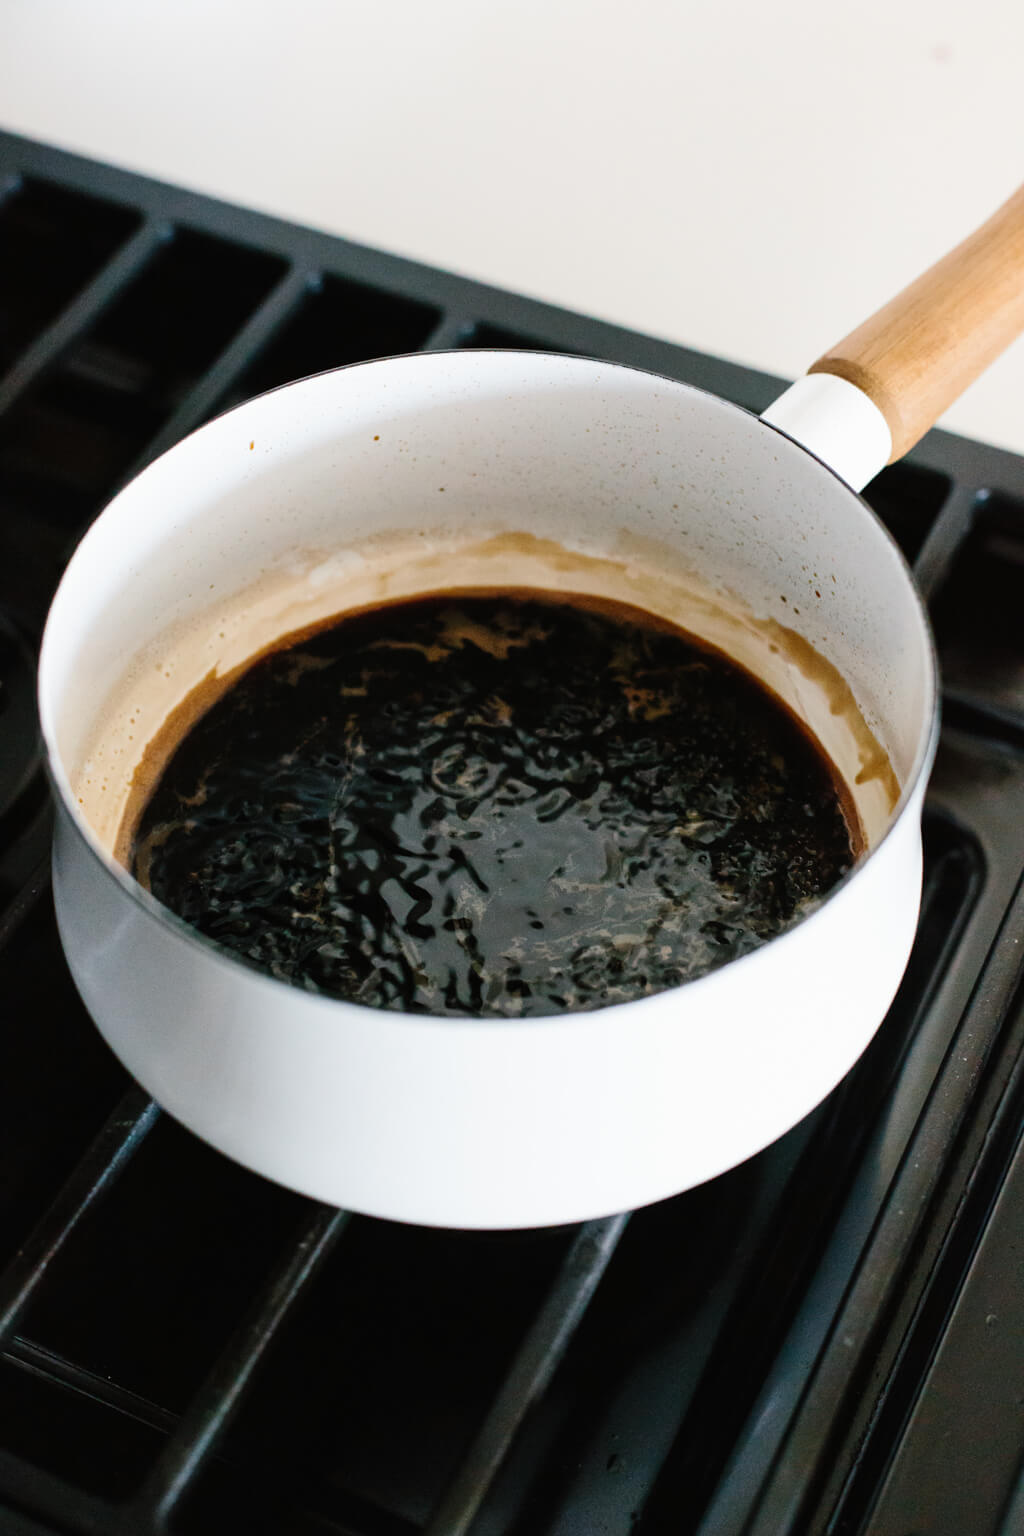 It's easy to make balsamic reduction (balsamic glaze) at home. It just takes one ingredient and 15 minutes!